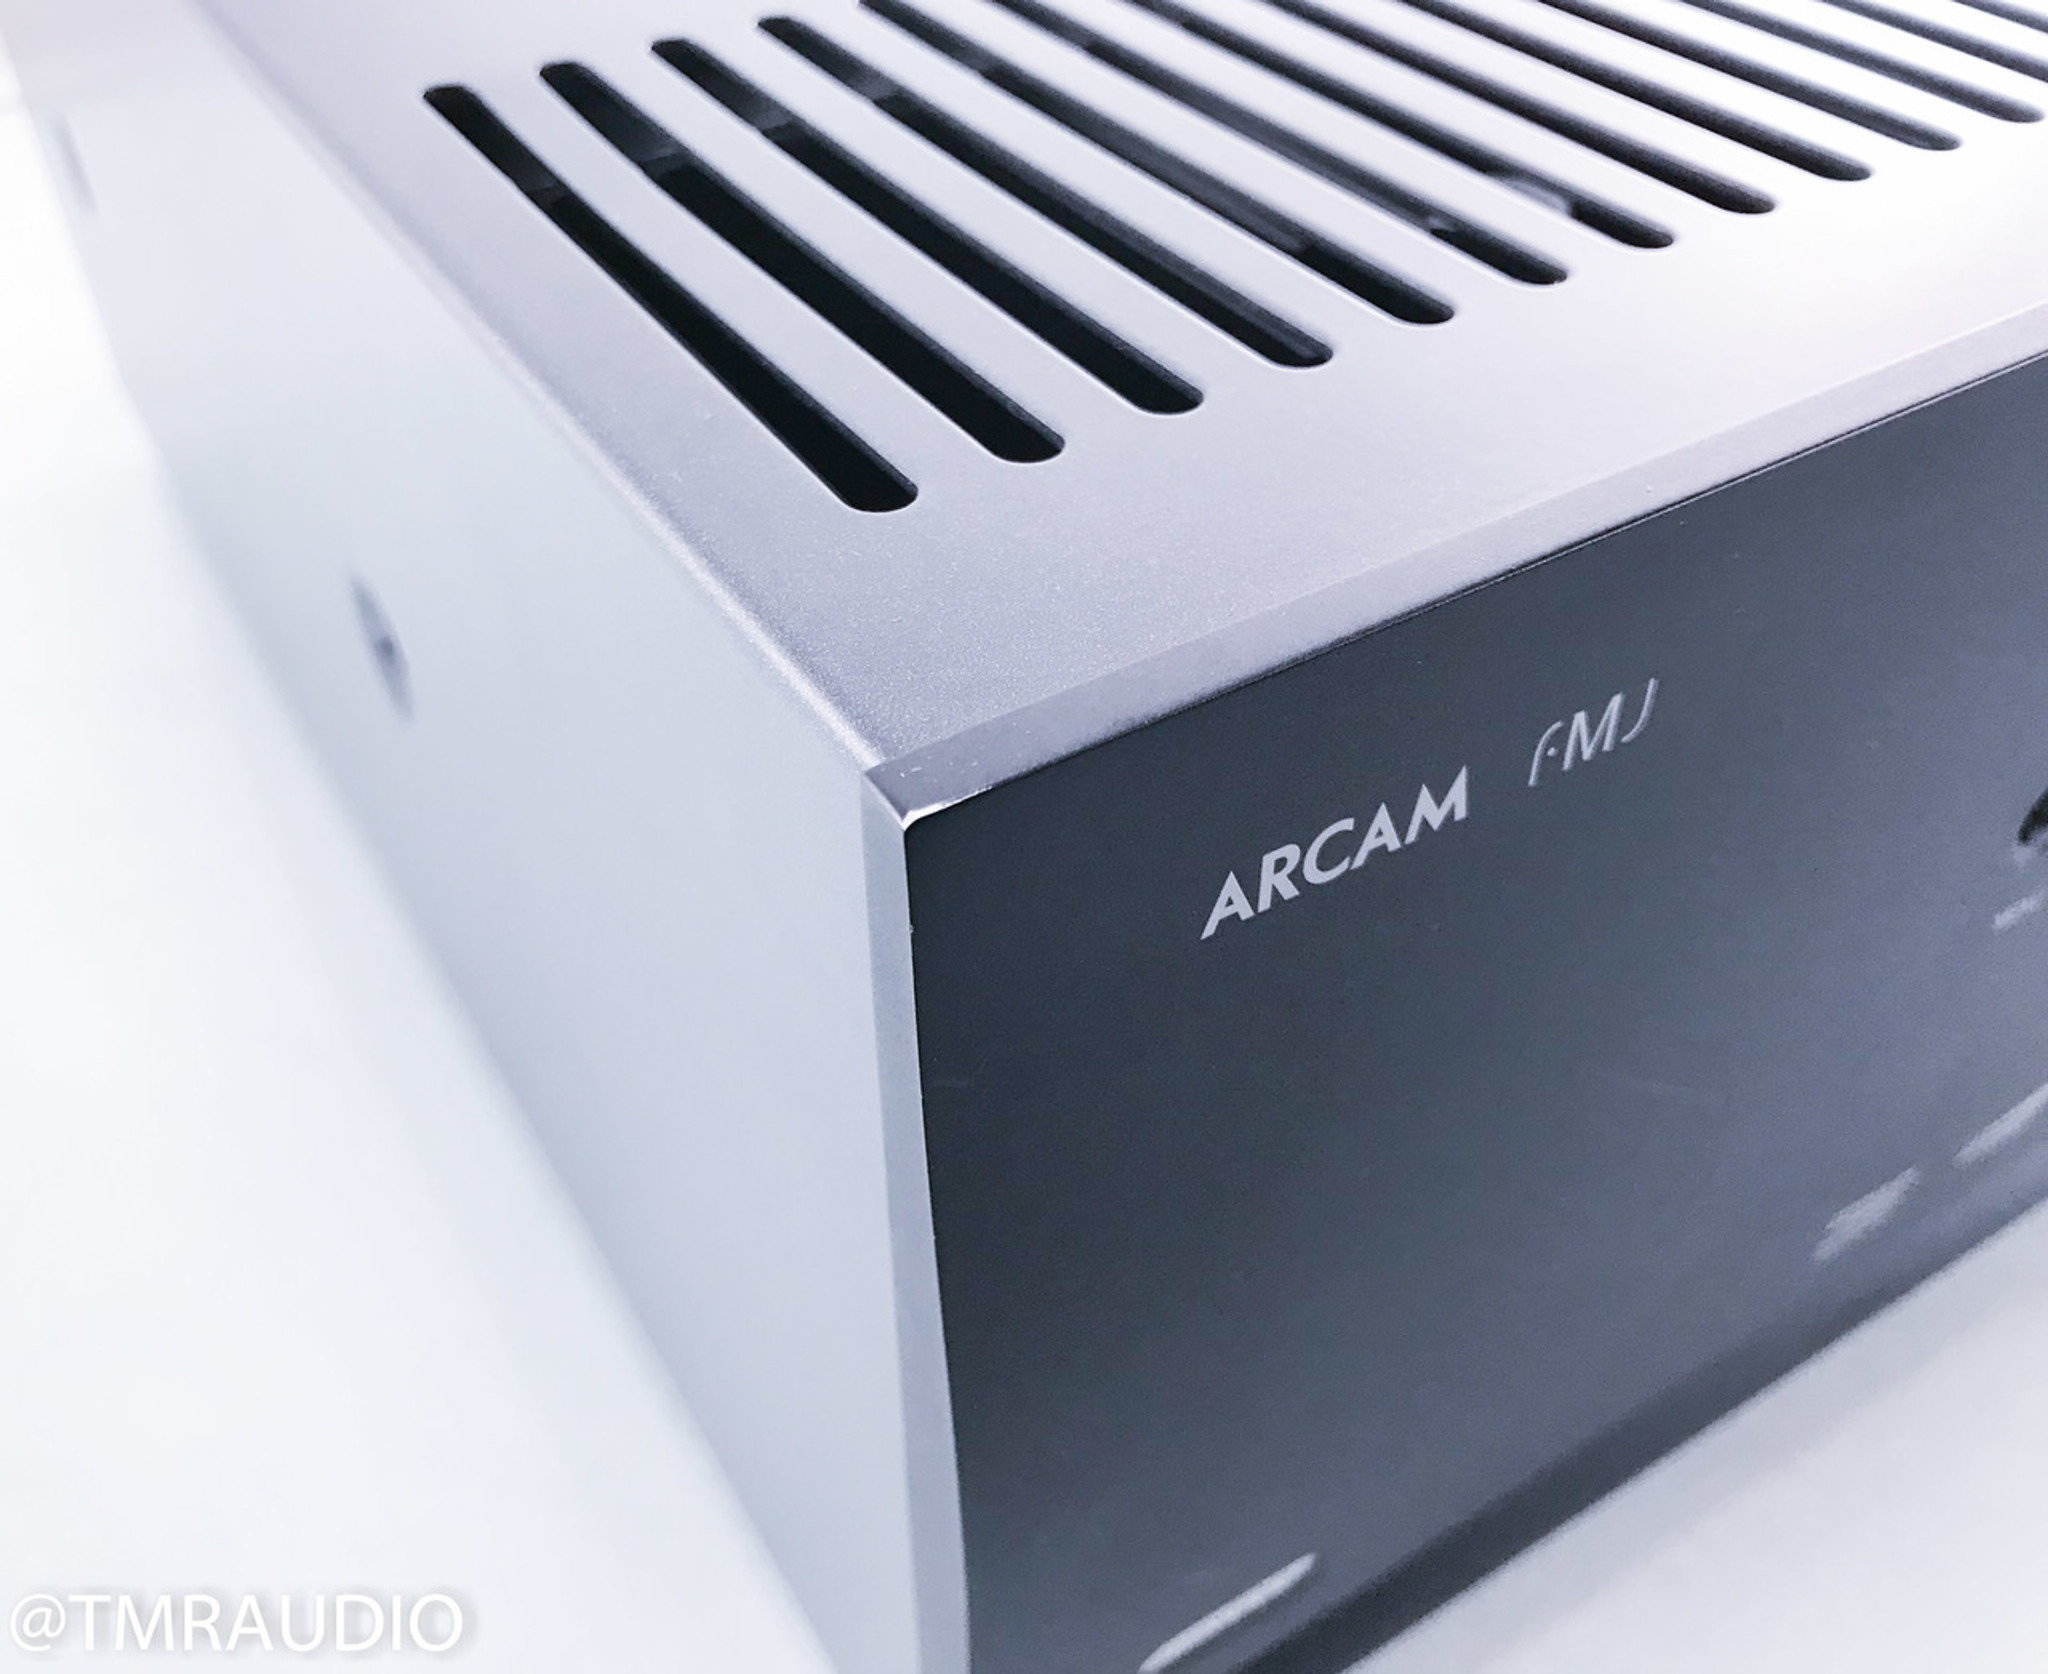 Arcam AVR600 3D 7 1 Channel Home Theater Receiver